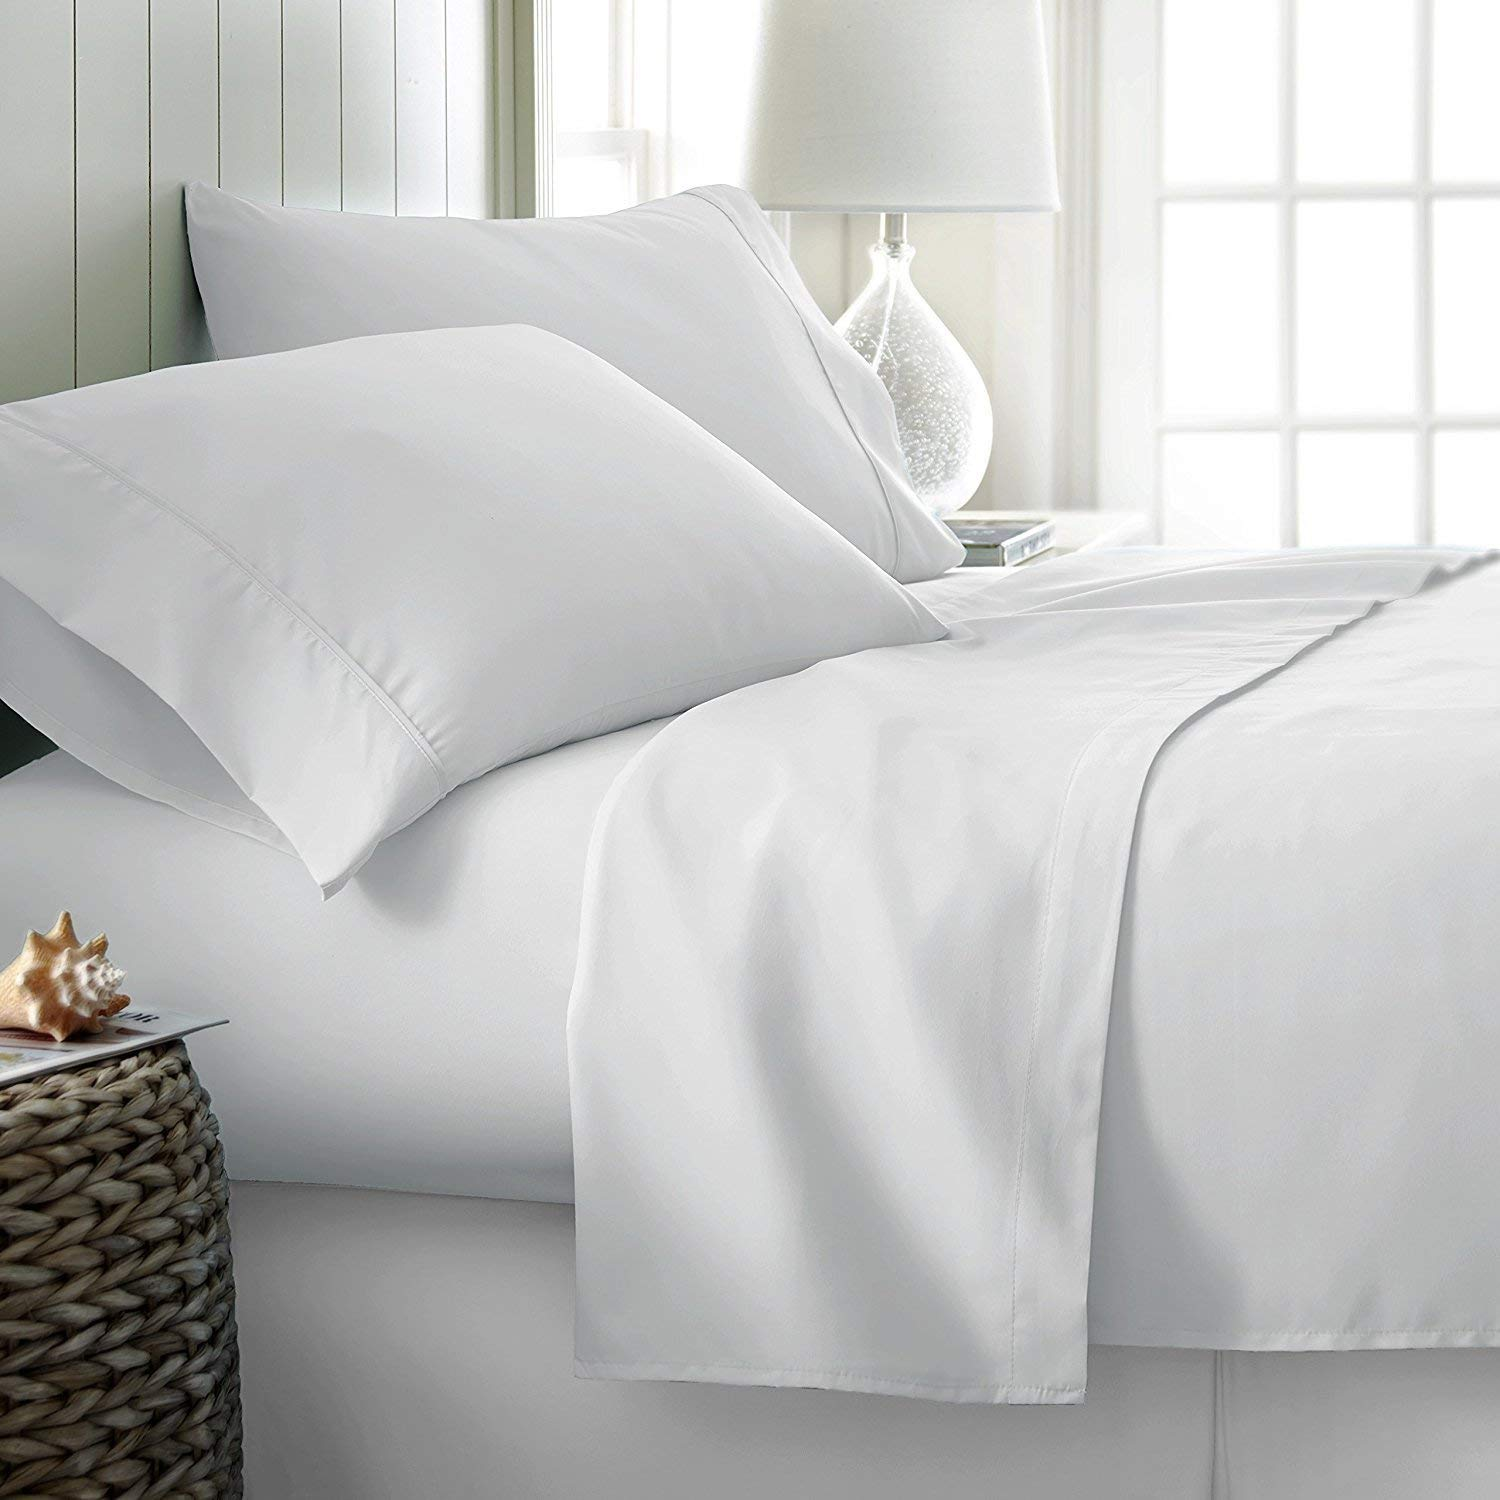 Image of Carressa Linen's 100% Egyptian Cotton Sheets - Best 600 Thread Count Sheets